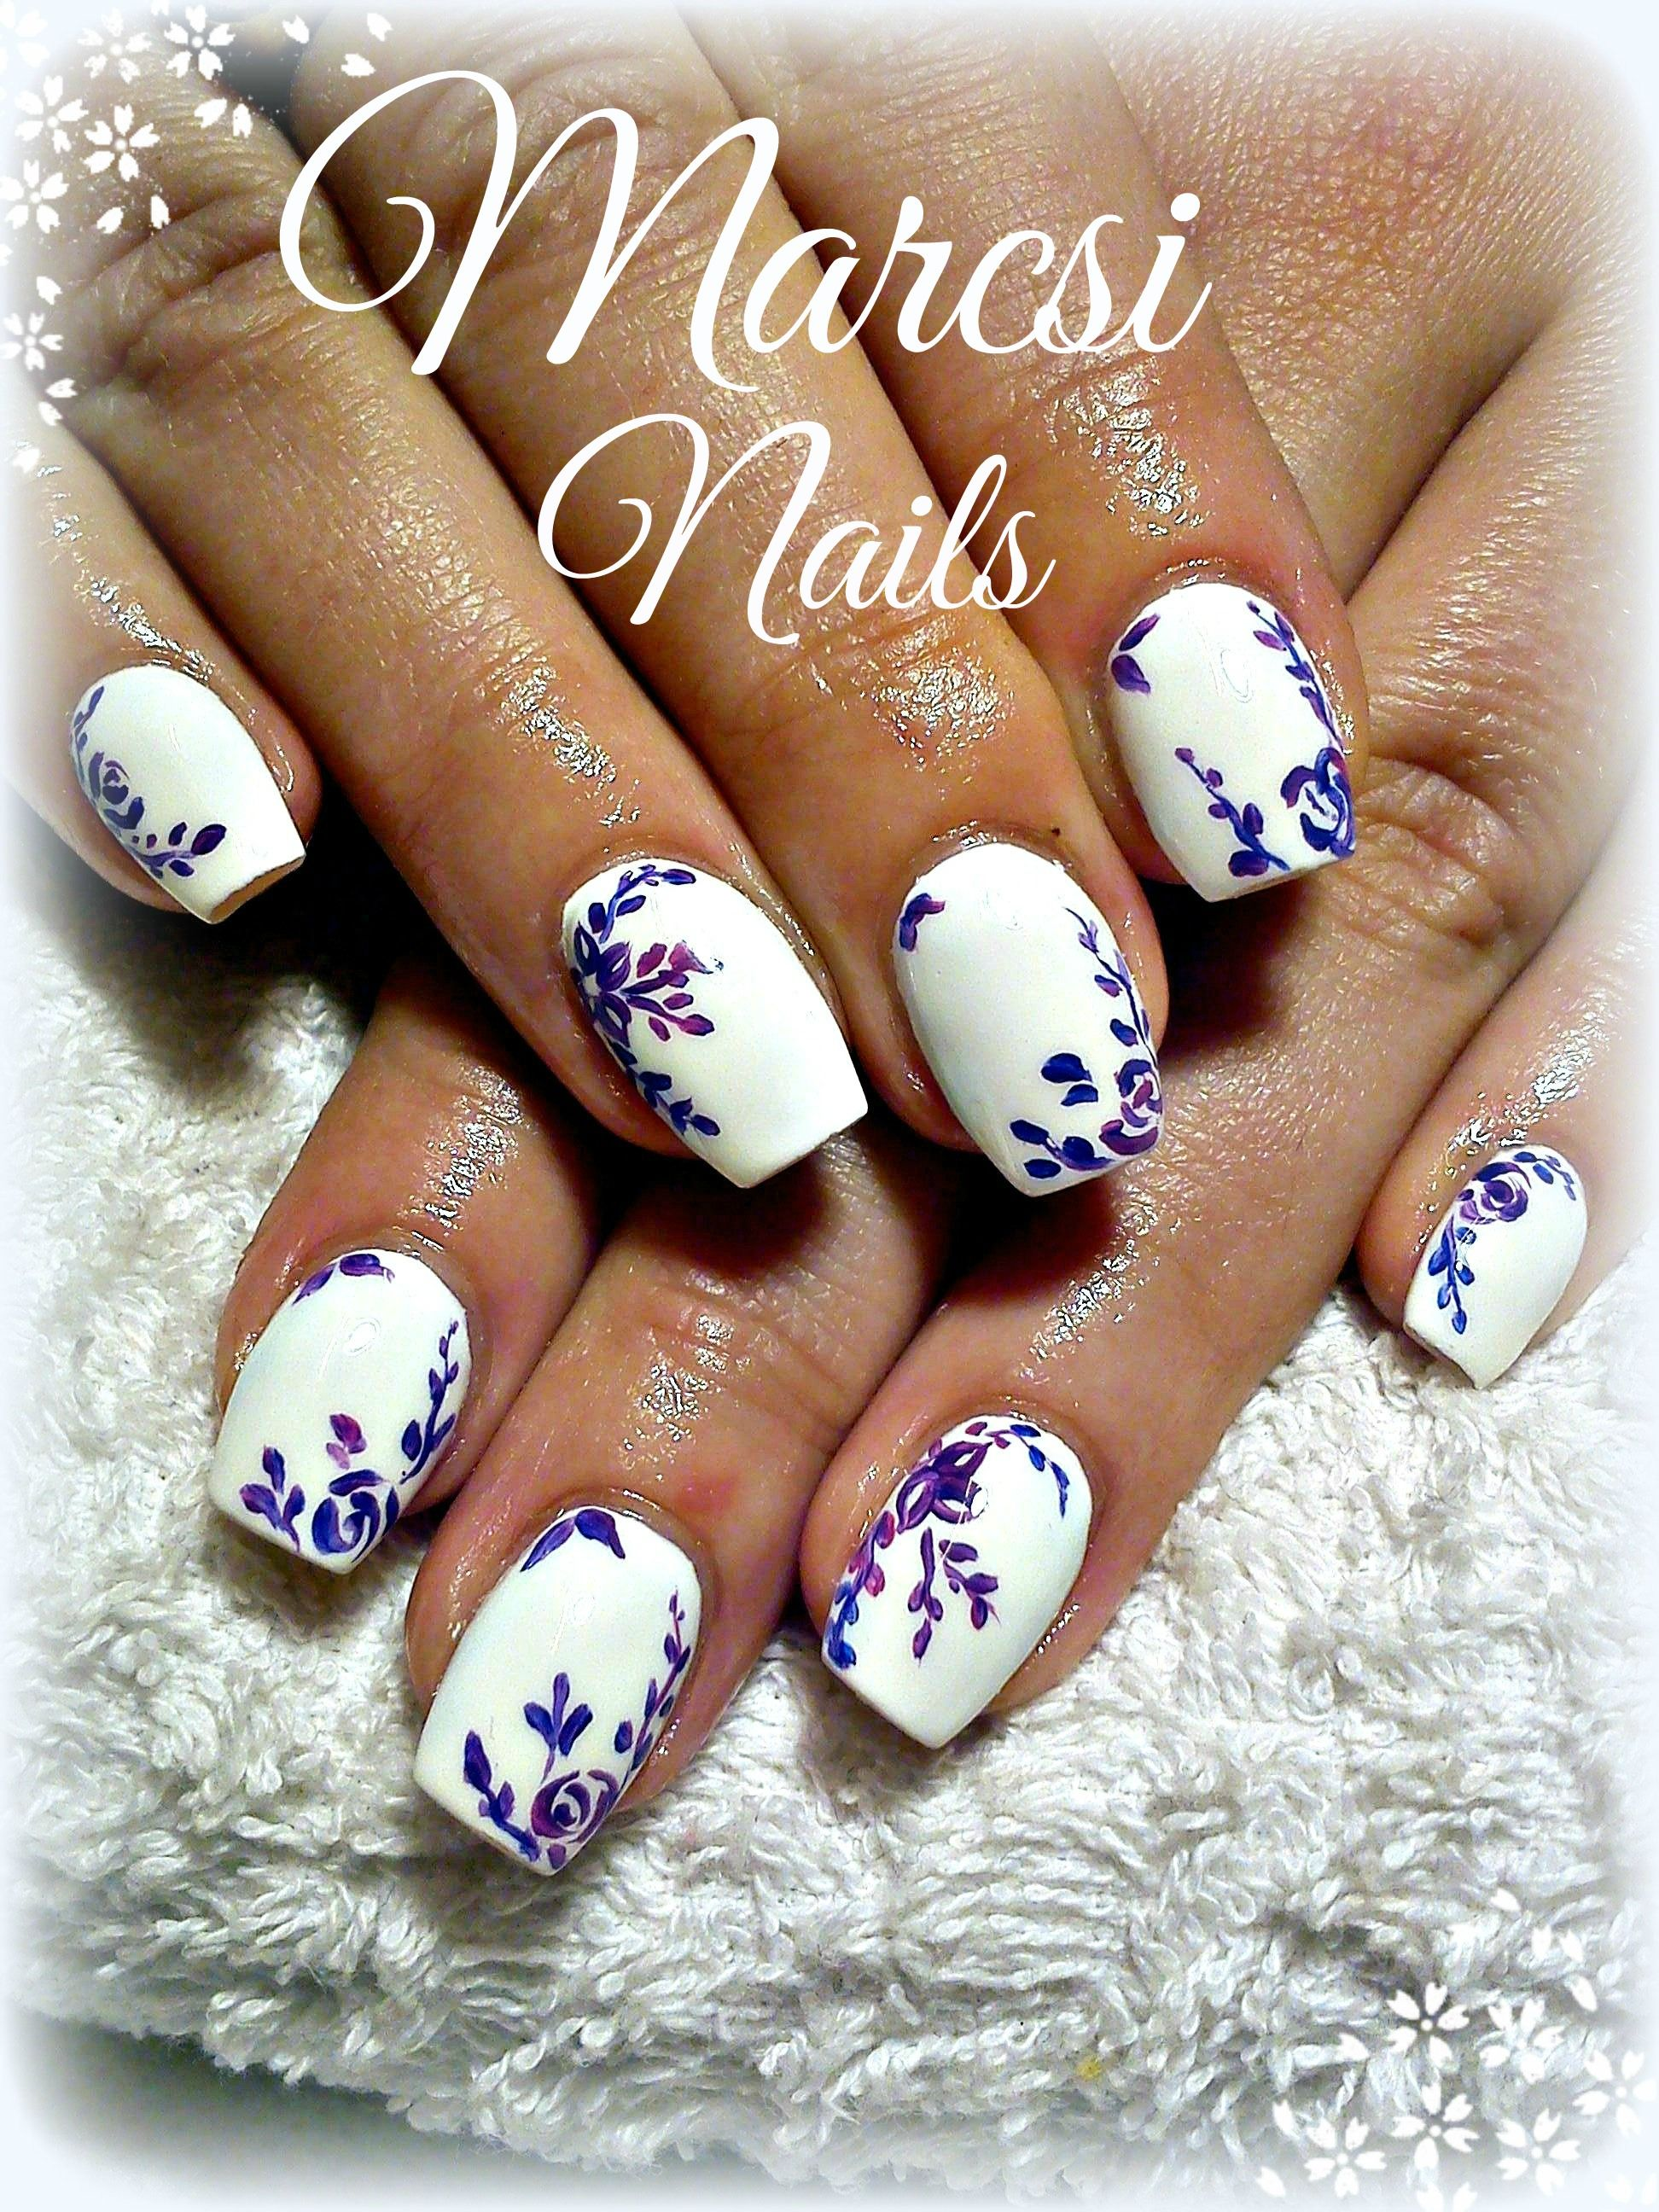 Little purple flower nail art white nail with flower spring little purple flower nail art white nail with flower mightylinksfo